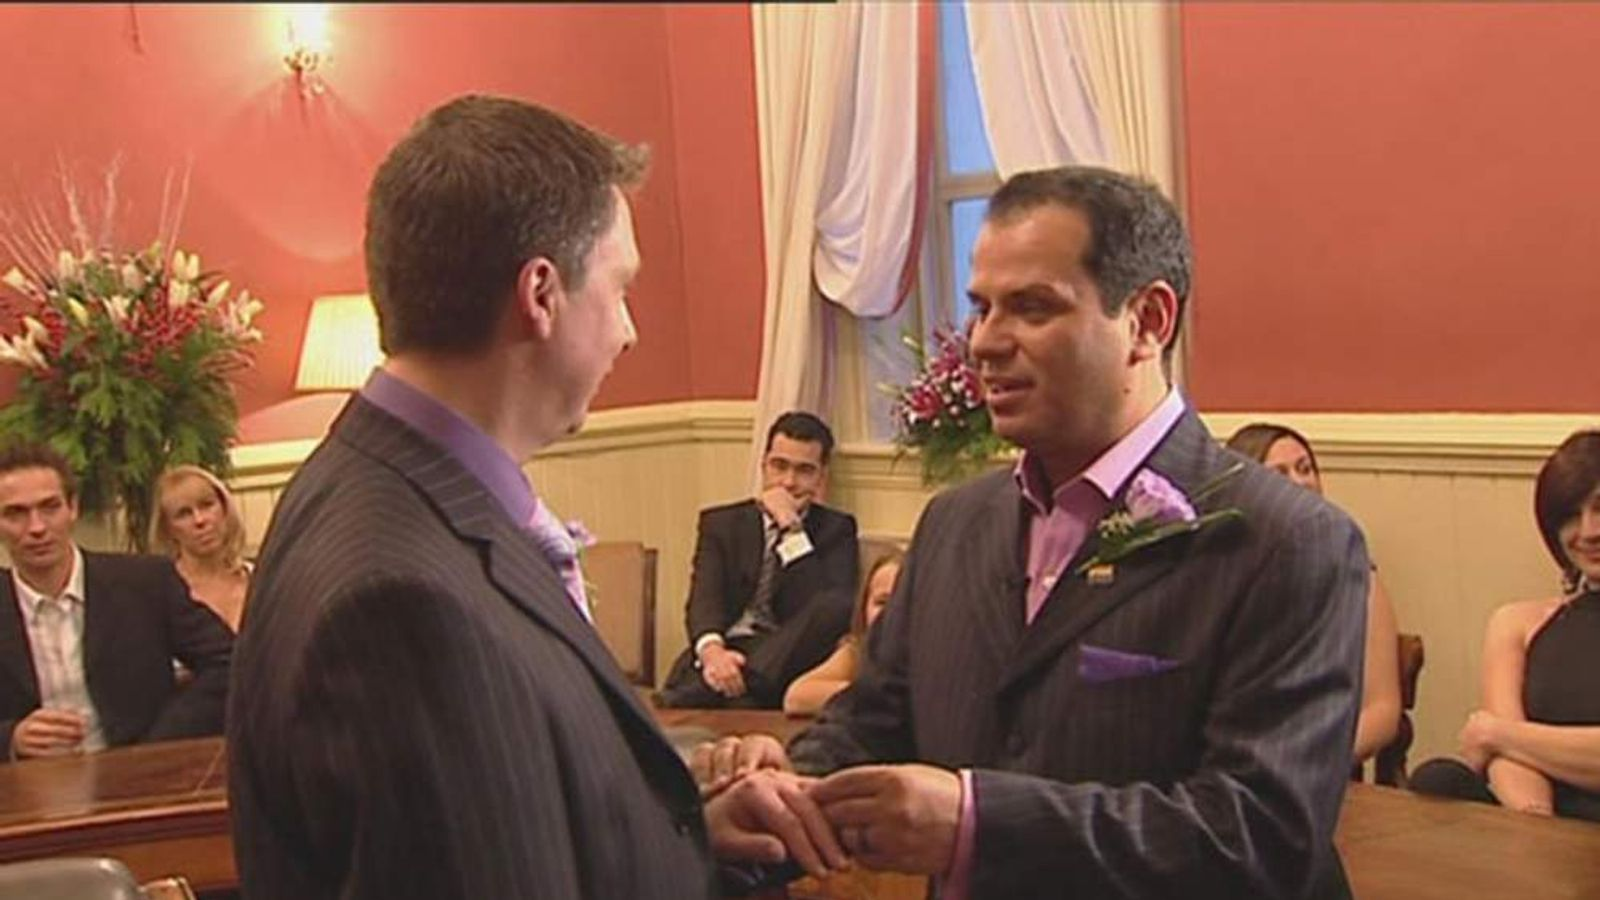 Two gay men get married - form civil partnership